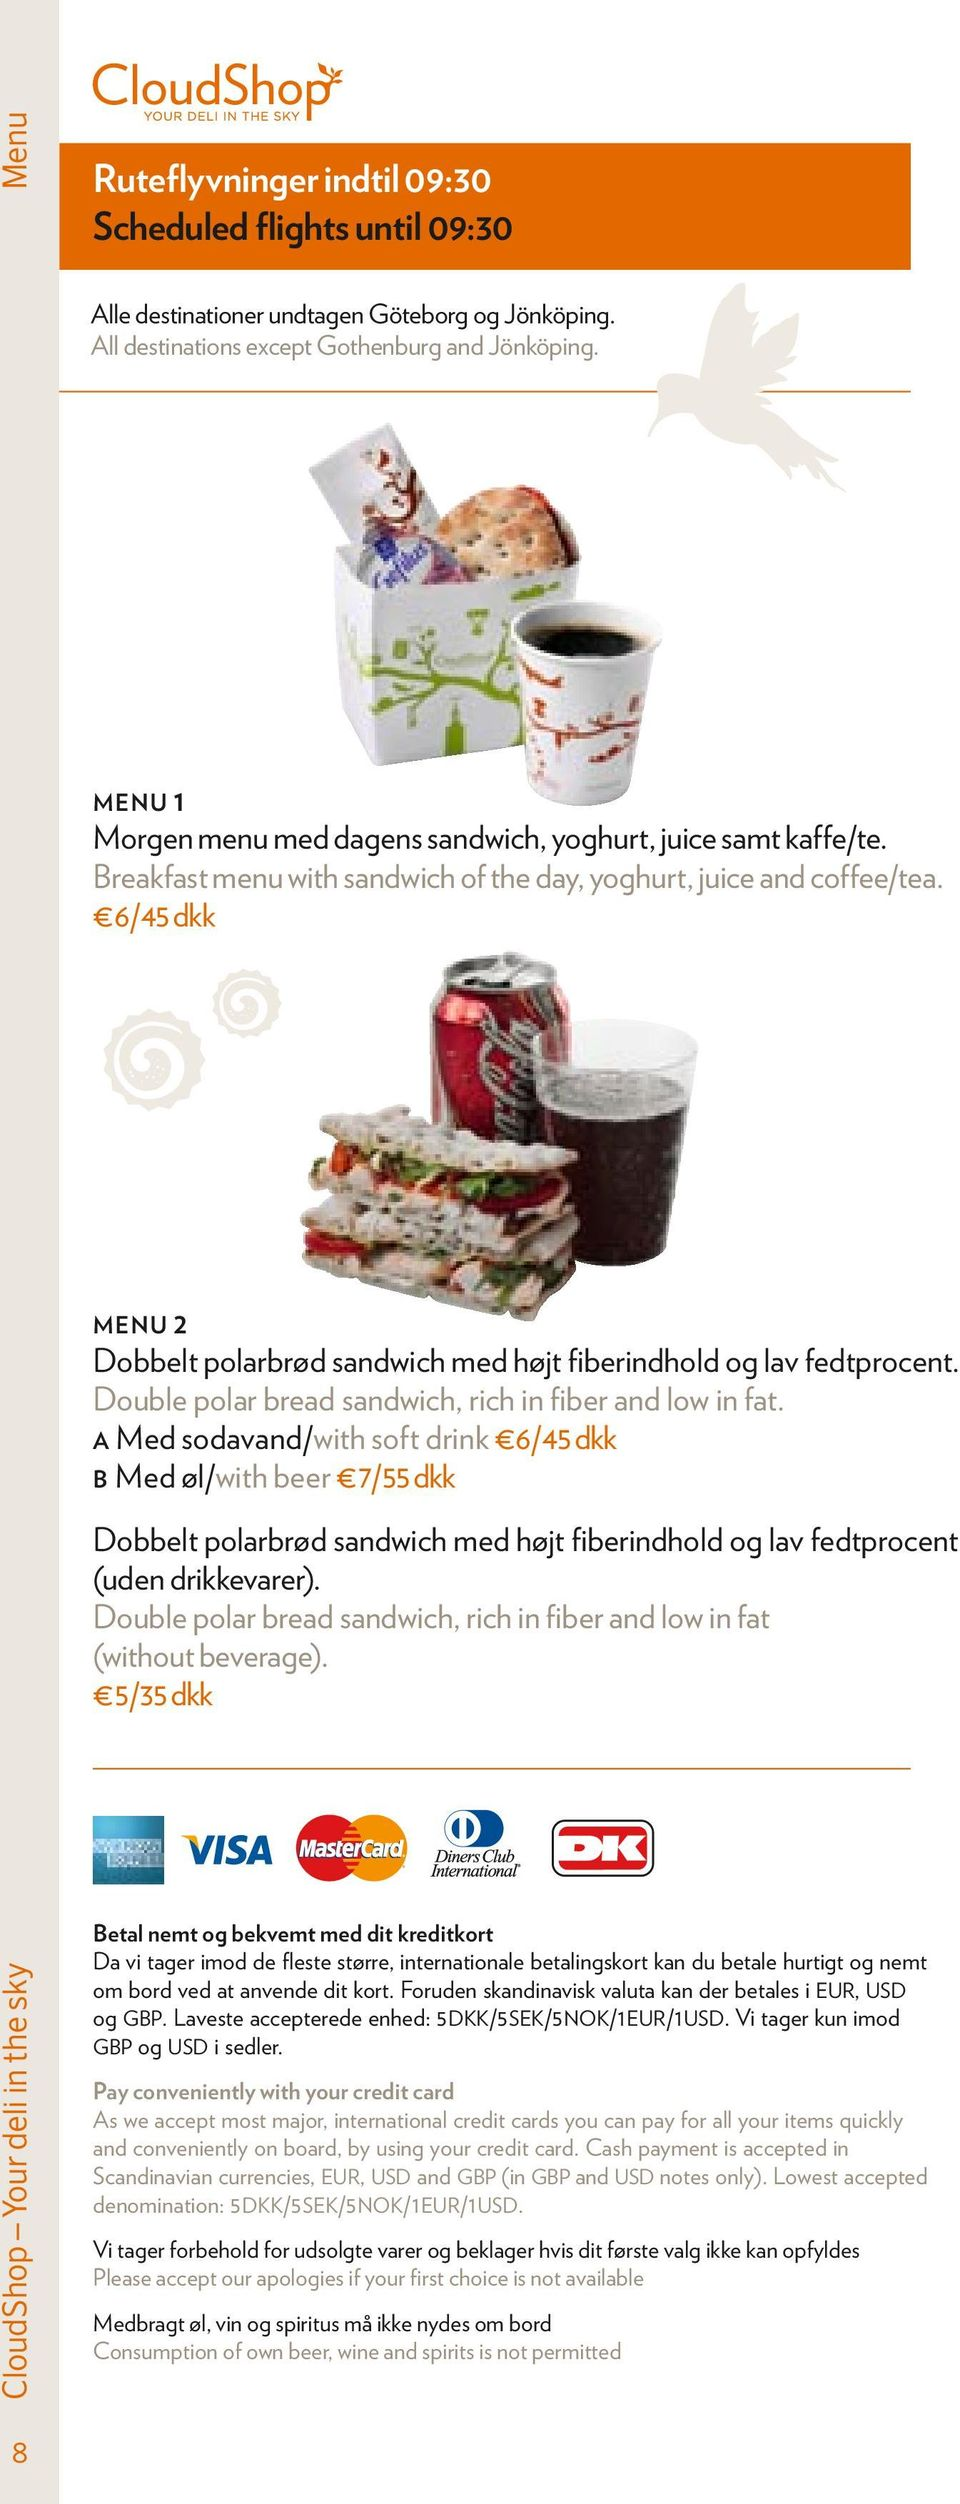 6/45 dkk Menu 2 Dobbelt polarbrød sandwich med højt fiberindhold og lav fedtprocent. Double polar bread sandwich, rich in fiber and low in fat.